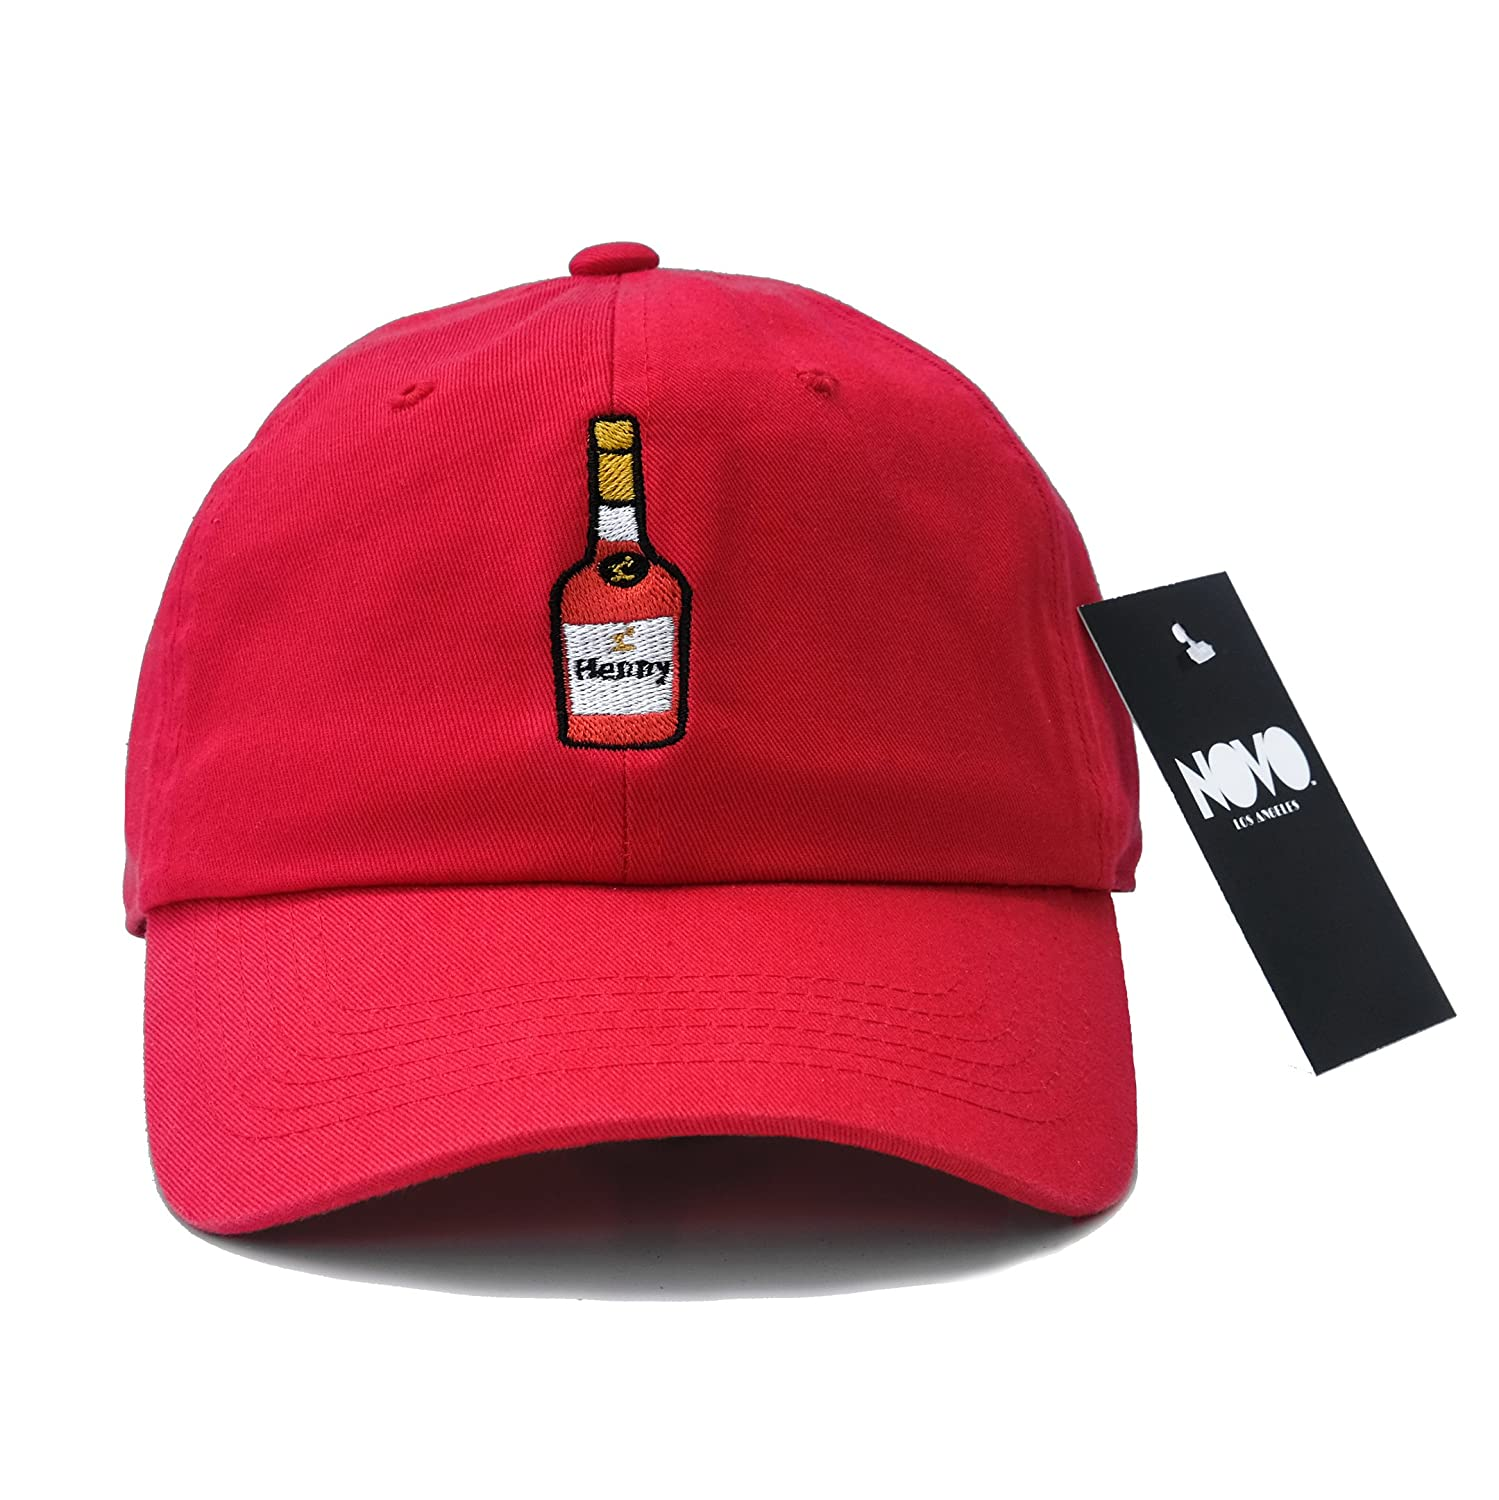 9dc3d15b Amazon.com: Novo Los Angeles Henny Dad Hat Baseball Cap by (Red): Clothing